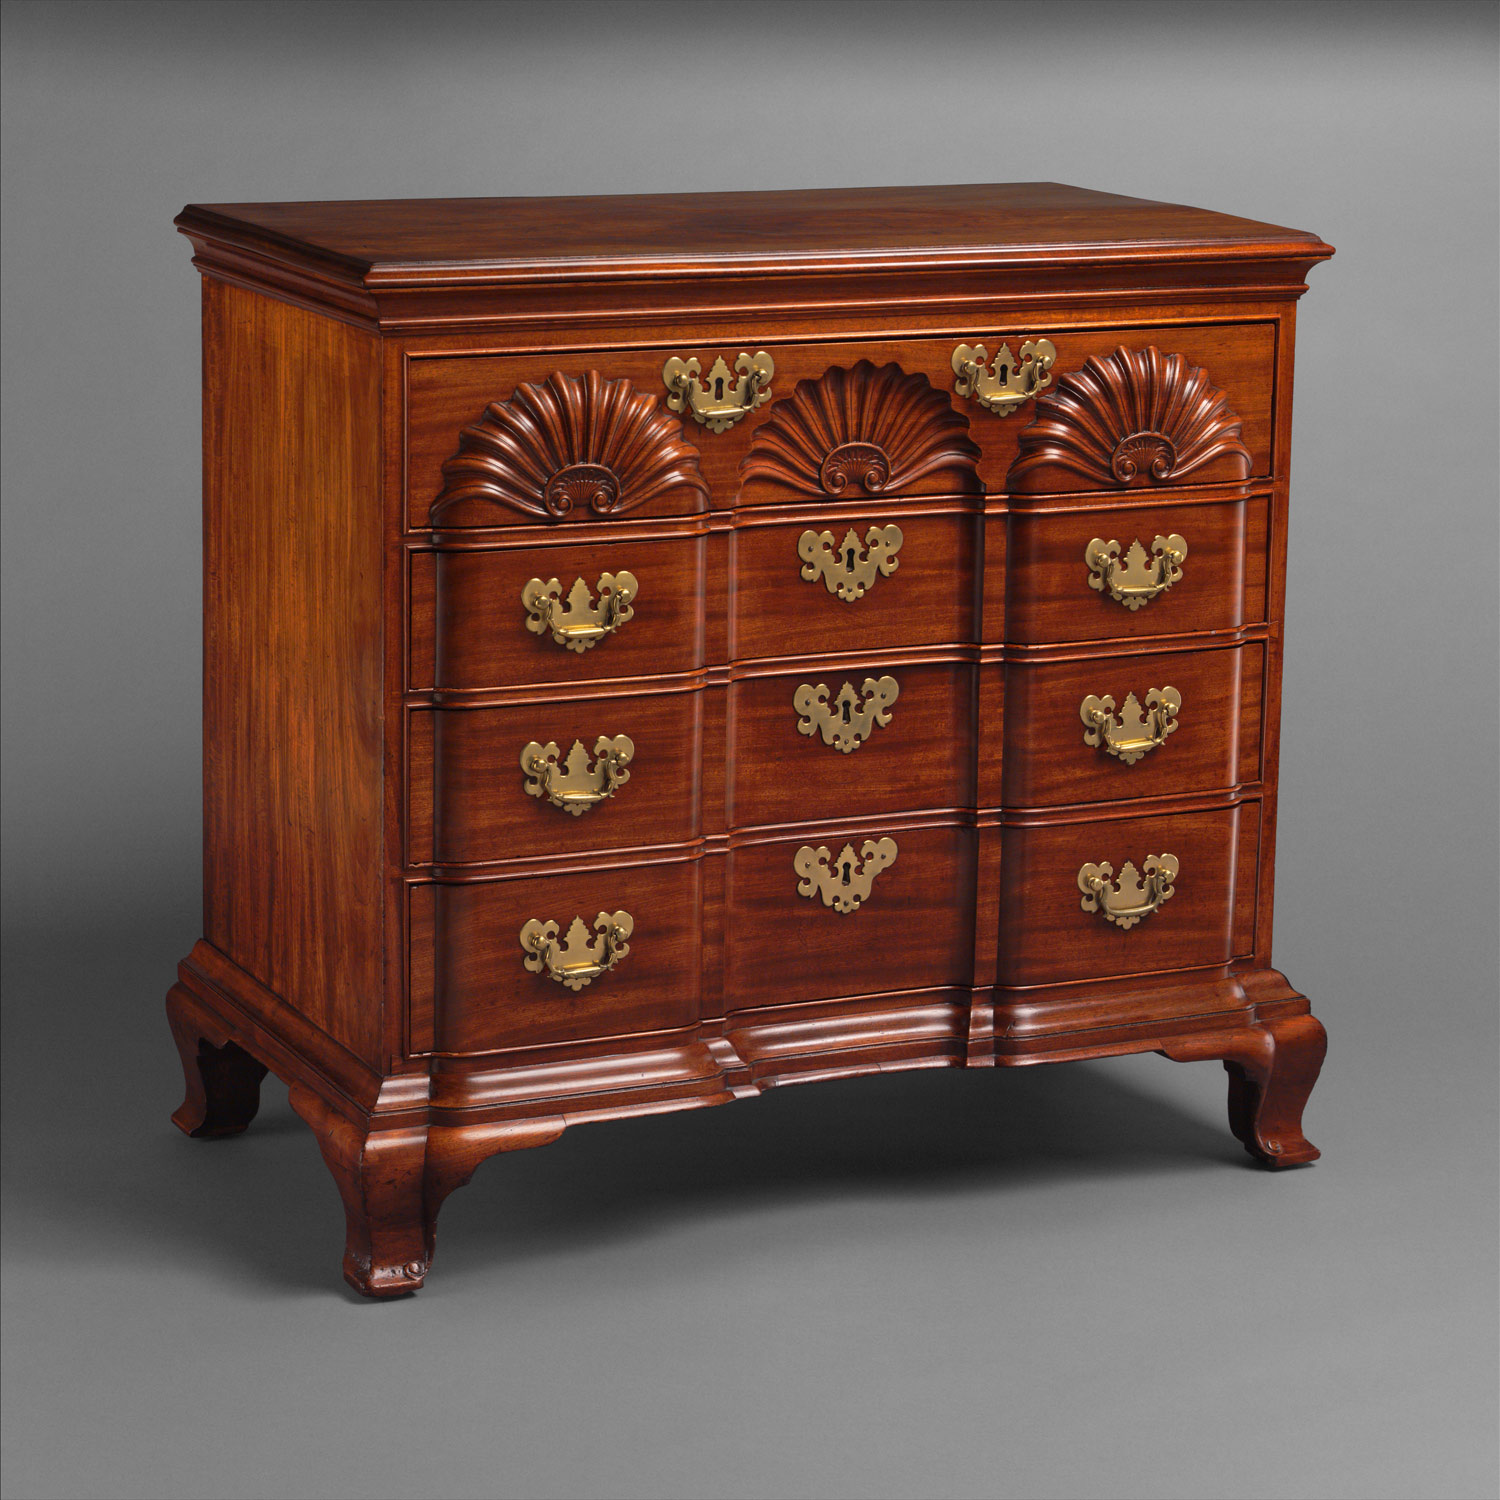 Chest Of Drawers John Townsend 27 57 1 Work Of Art